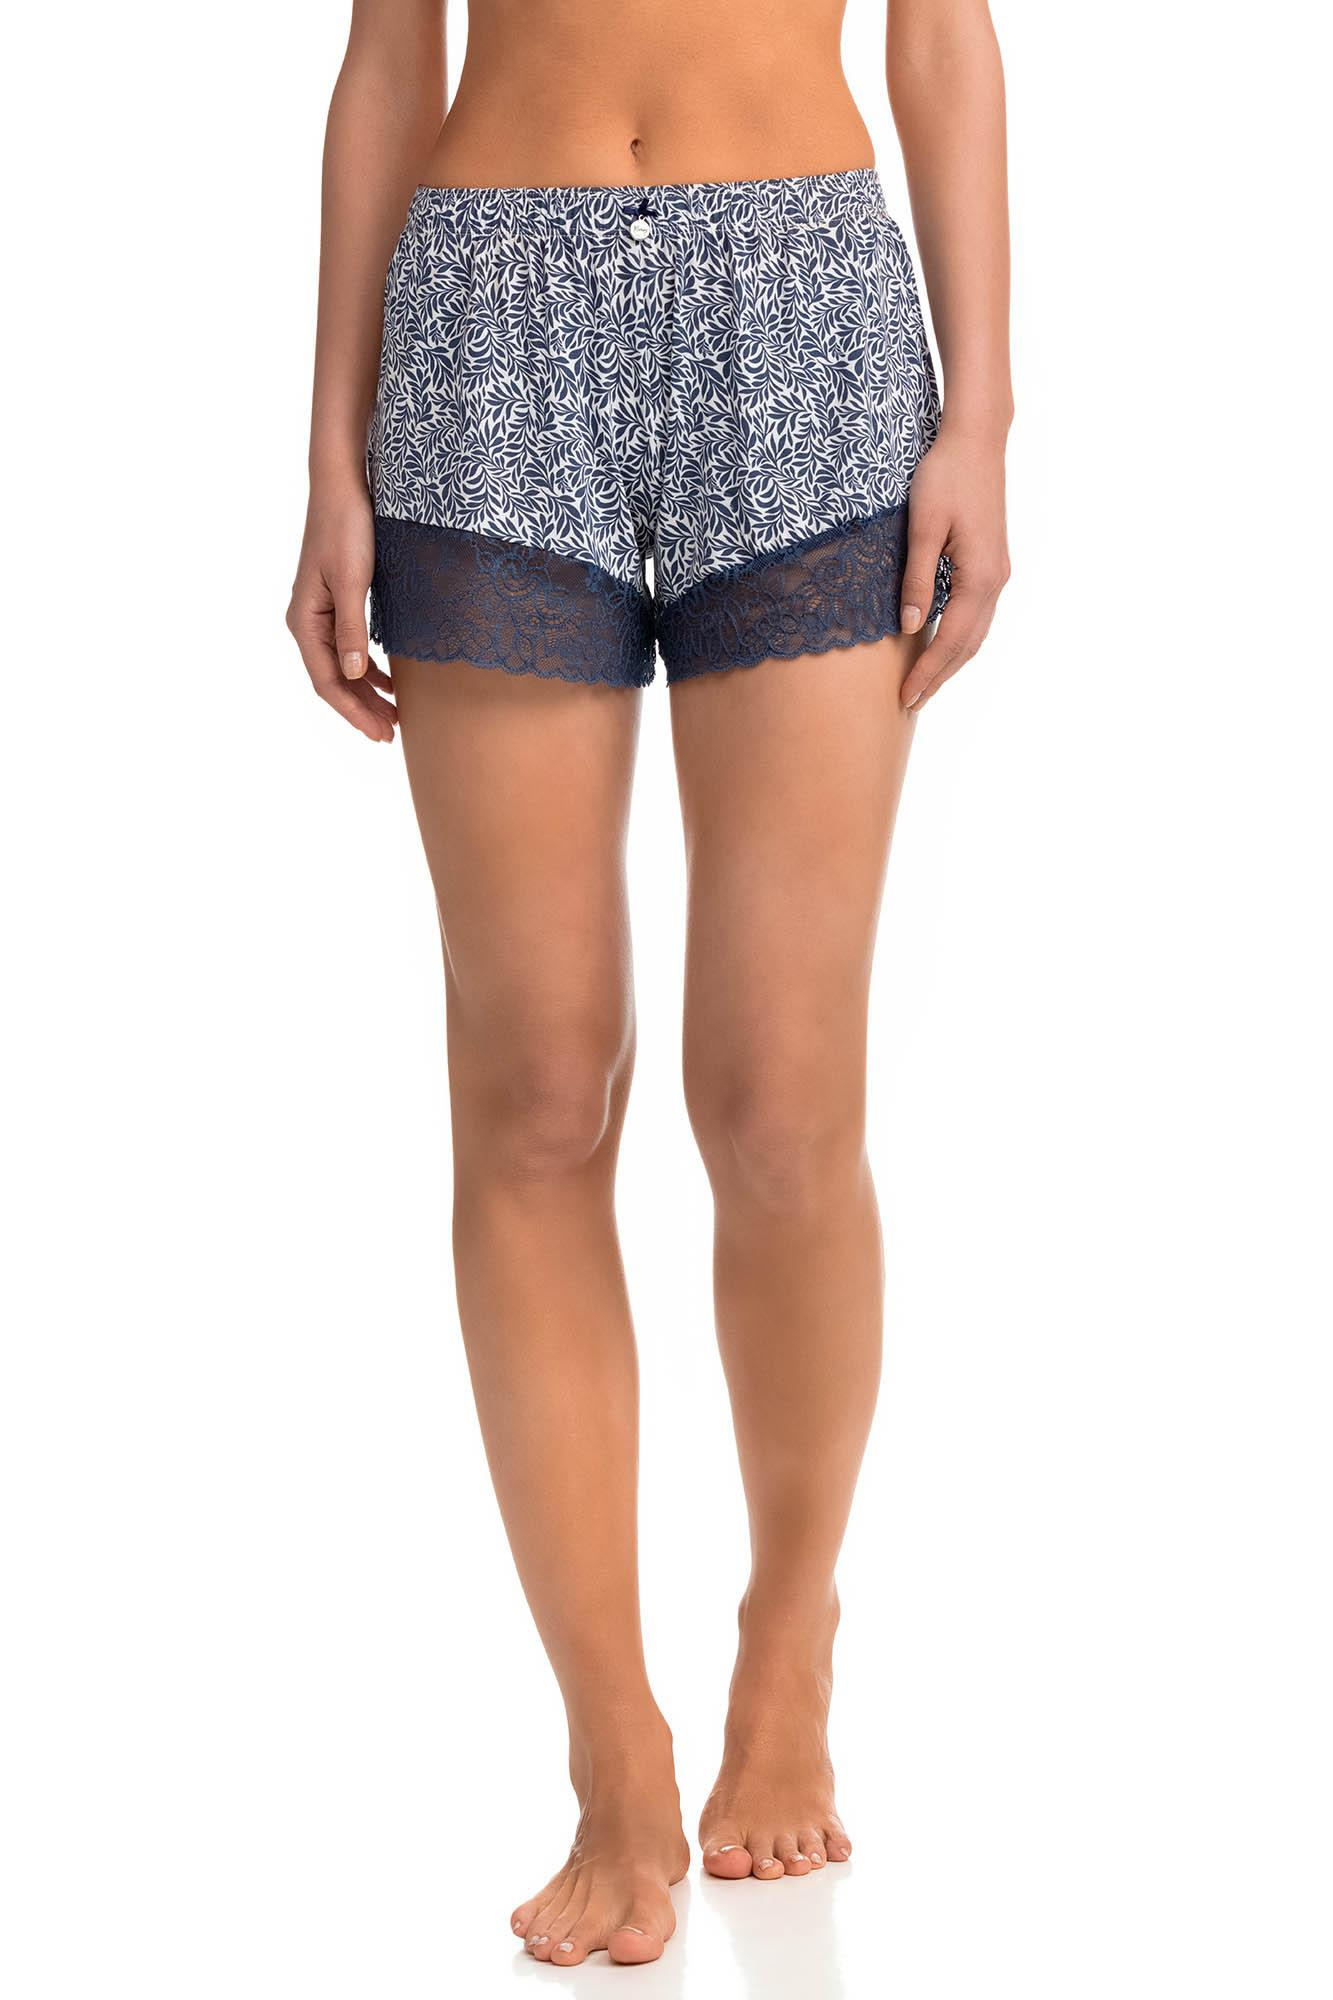 Women's Cheeky Shorts with Lace